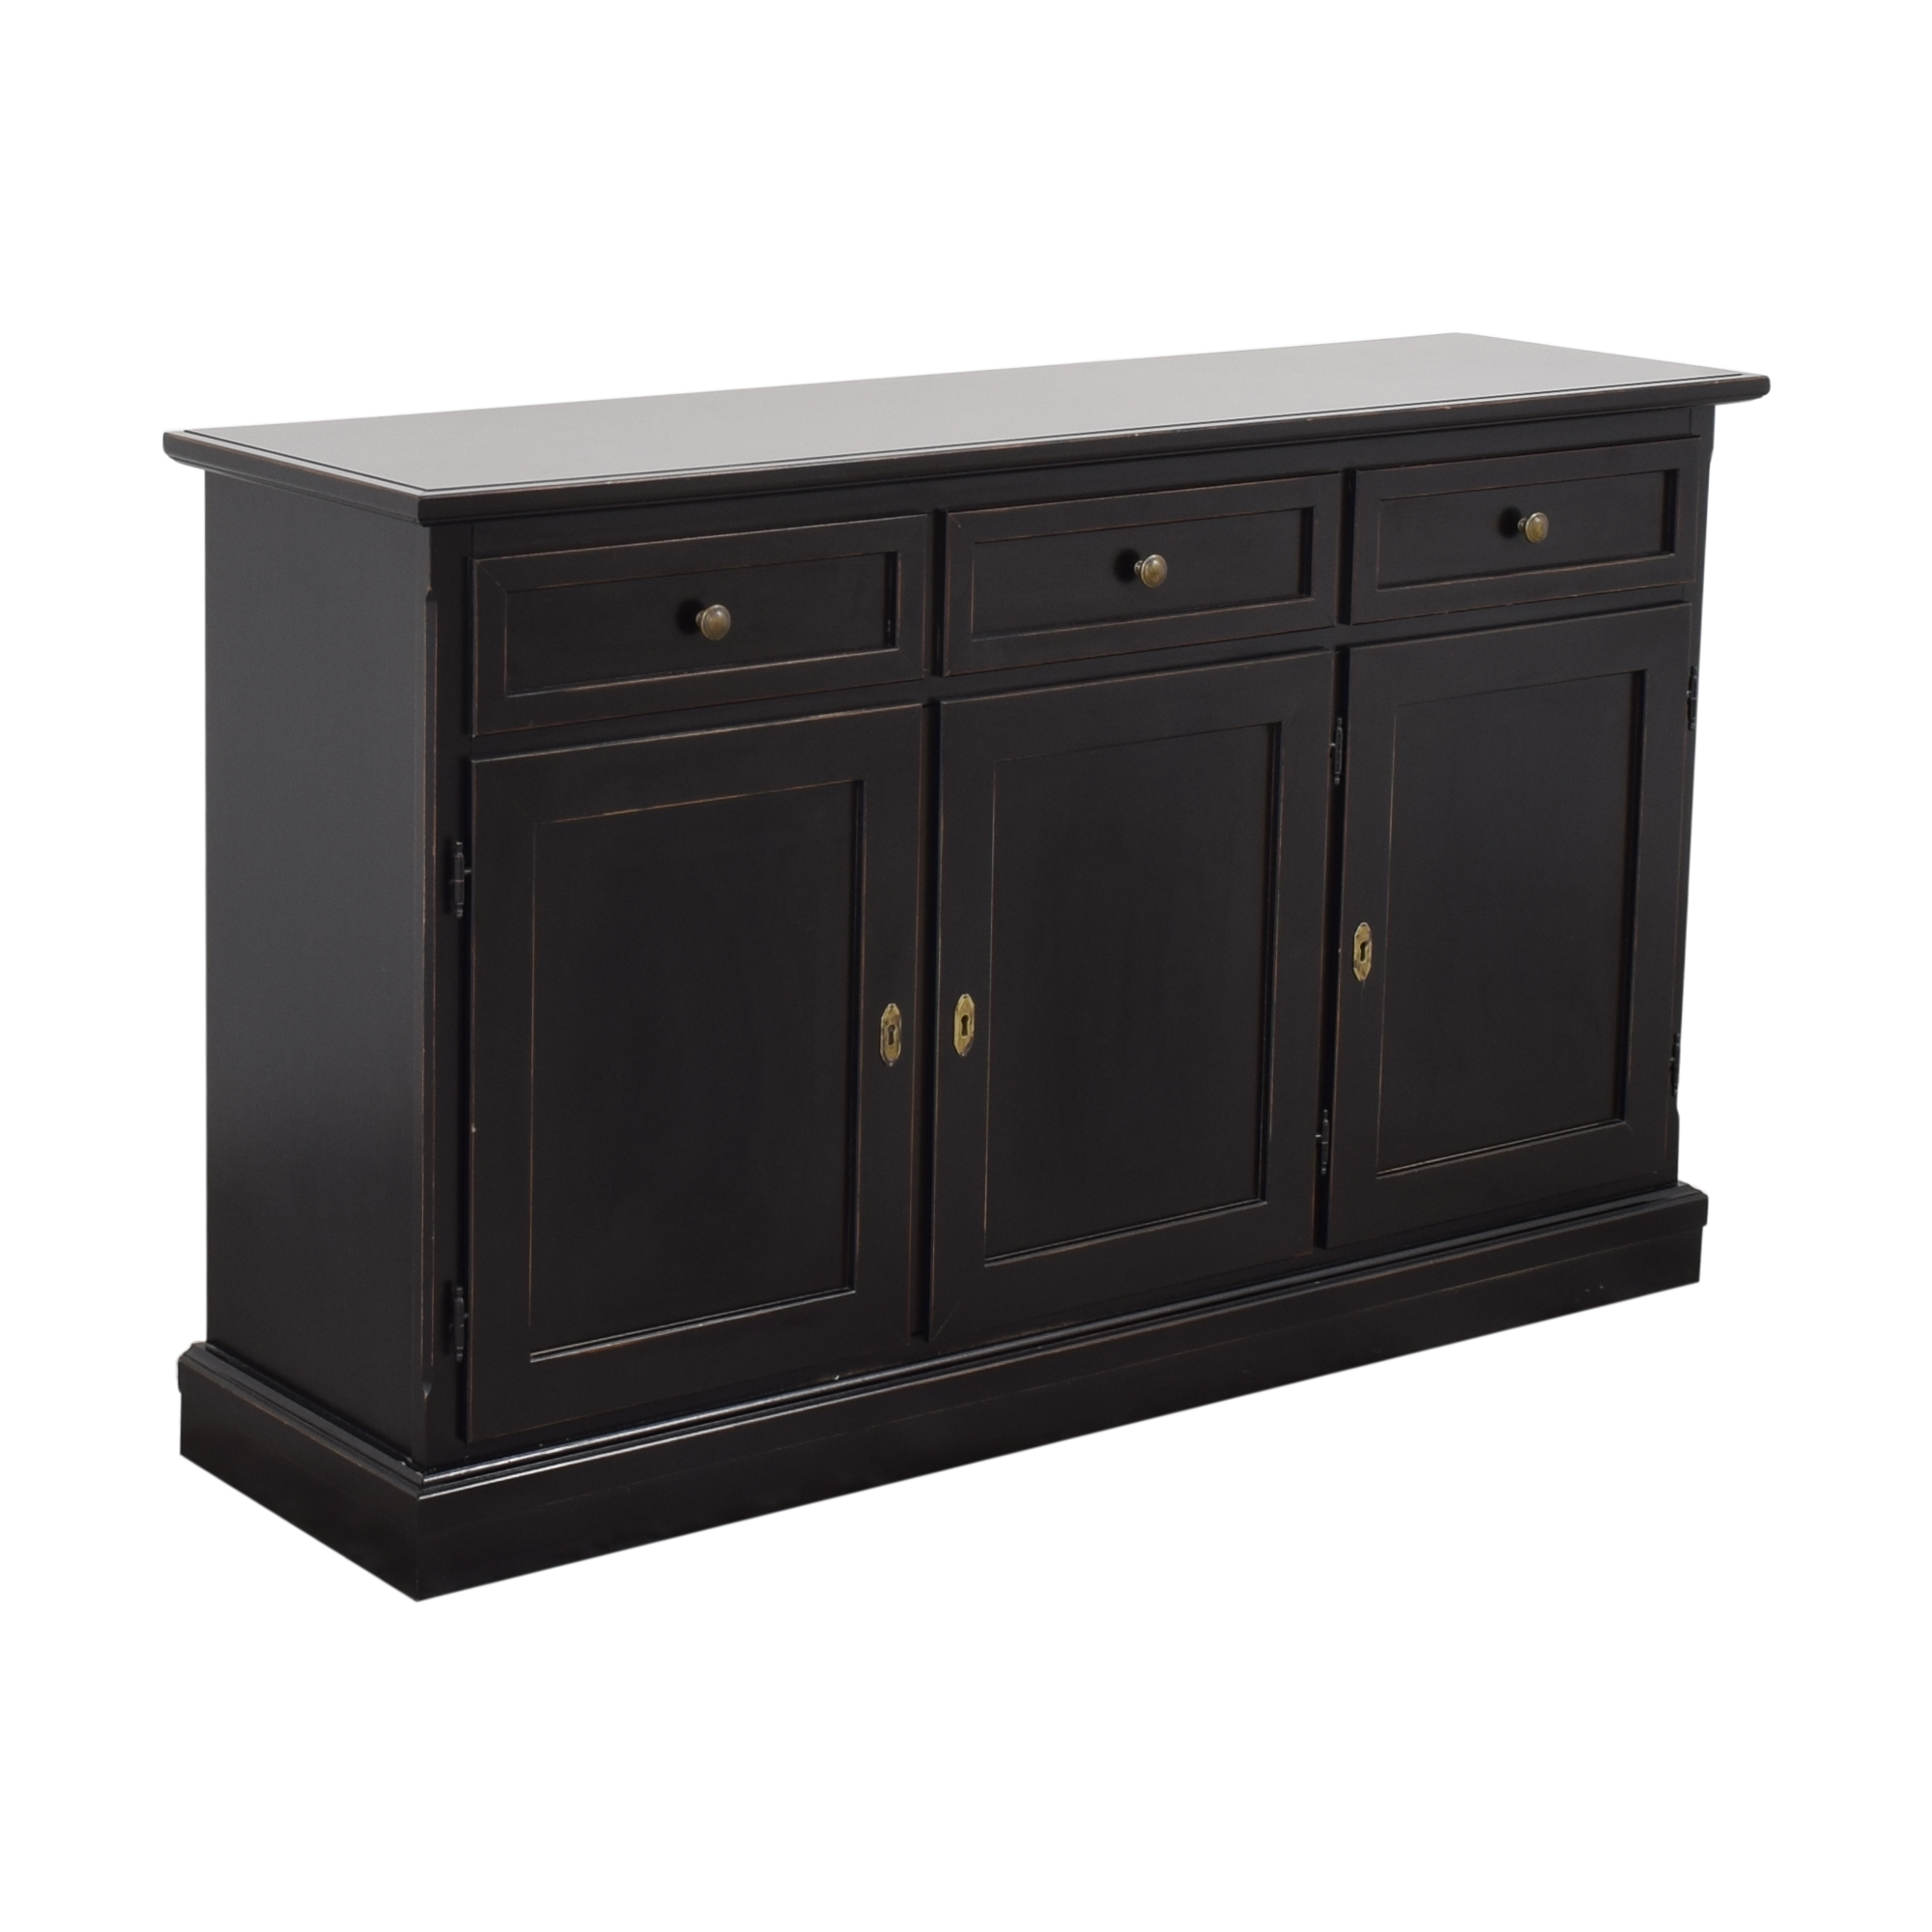 Crate & Barrel Crate & Barrel Pranzo II Sideboard second hand